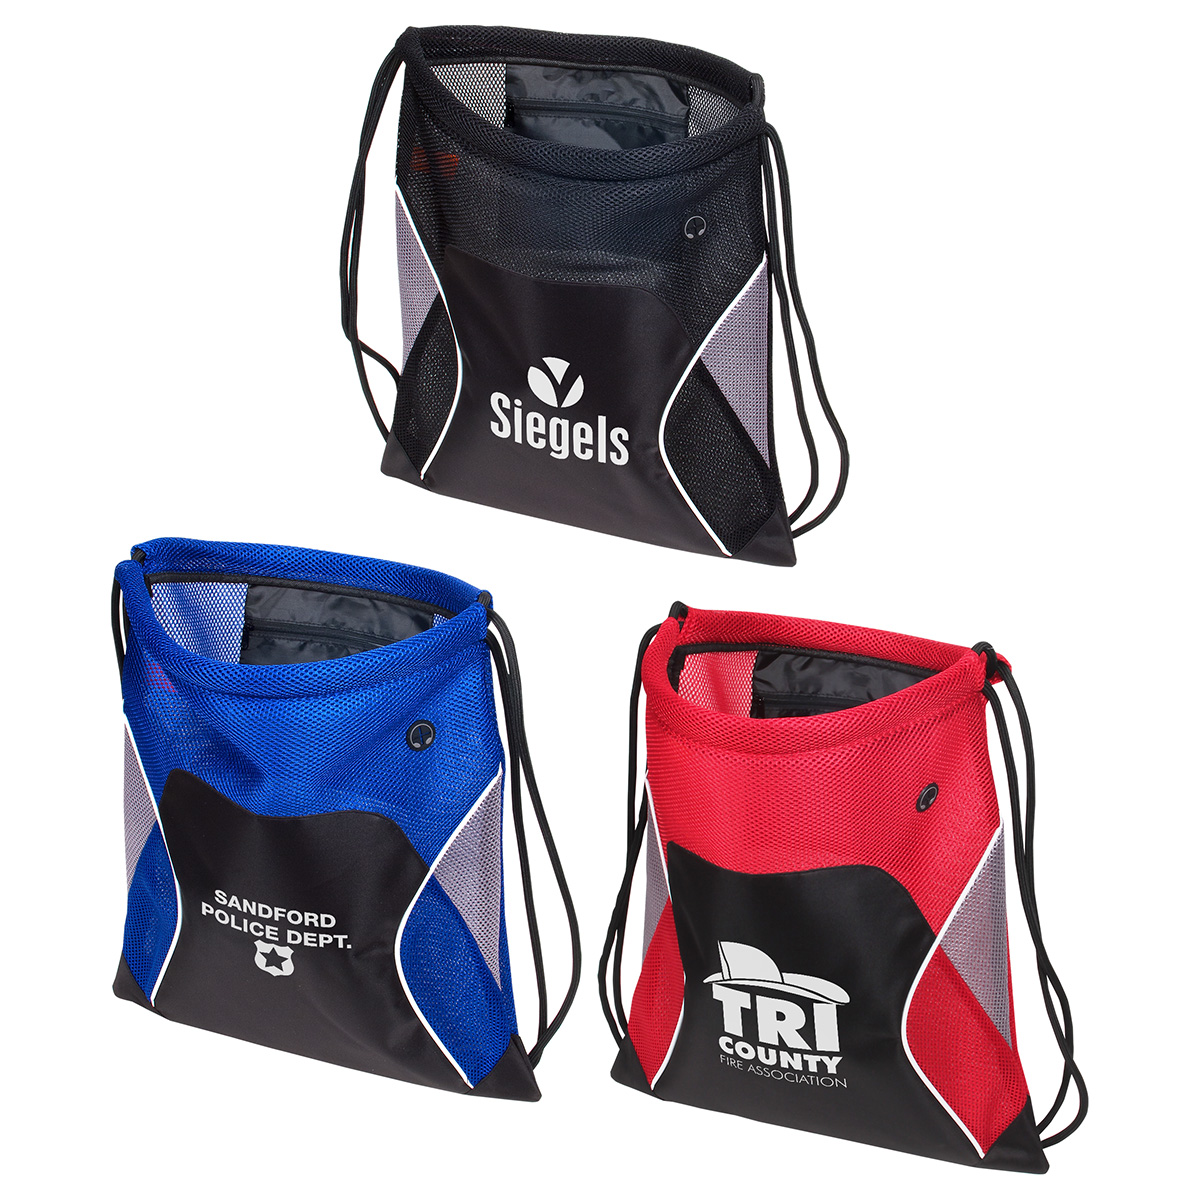 Jumbo Globetrotter Drawstring Bag, WBA-JG15, 1 Colour Imprint